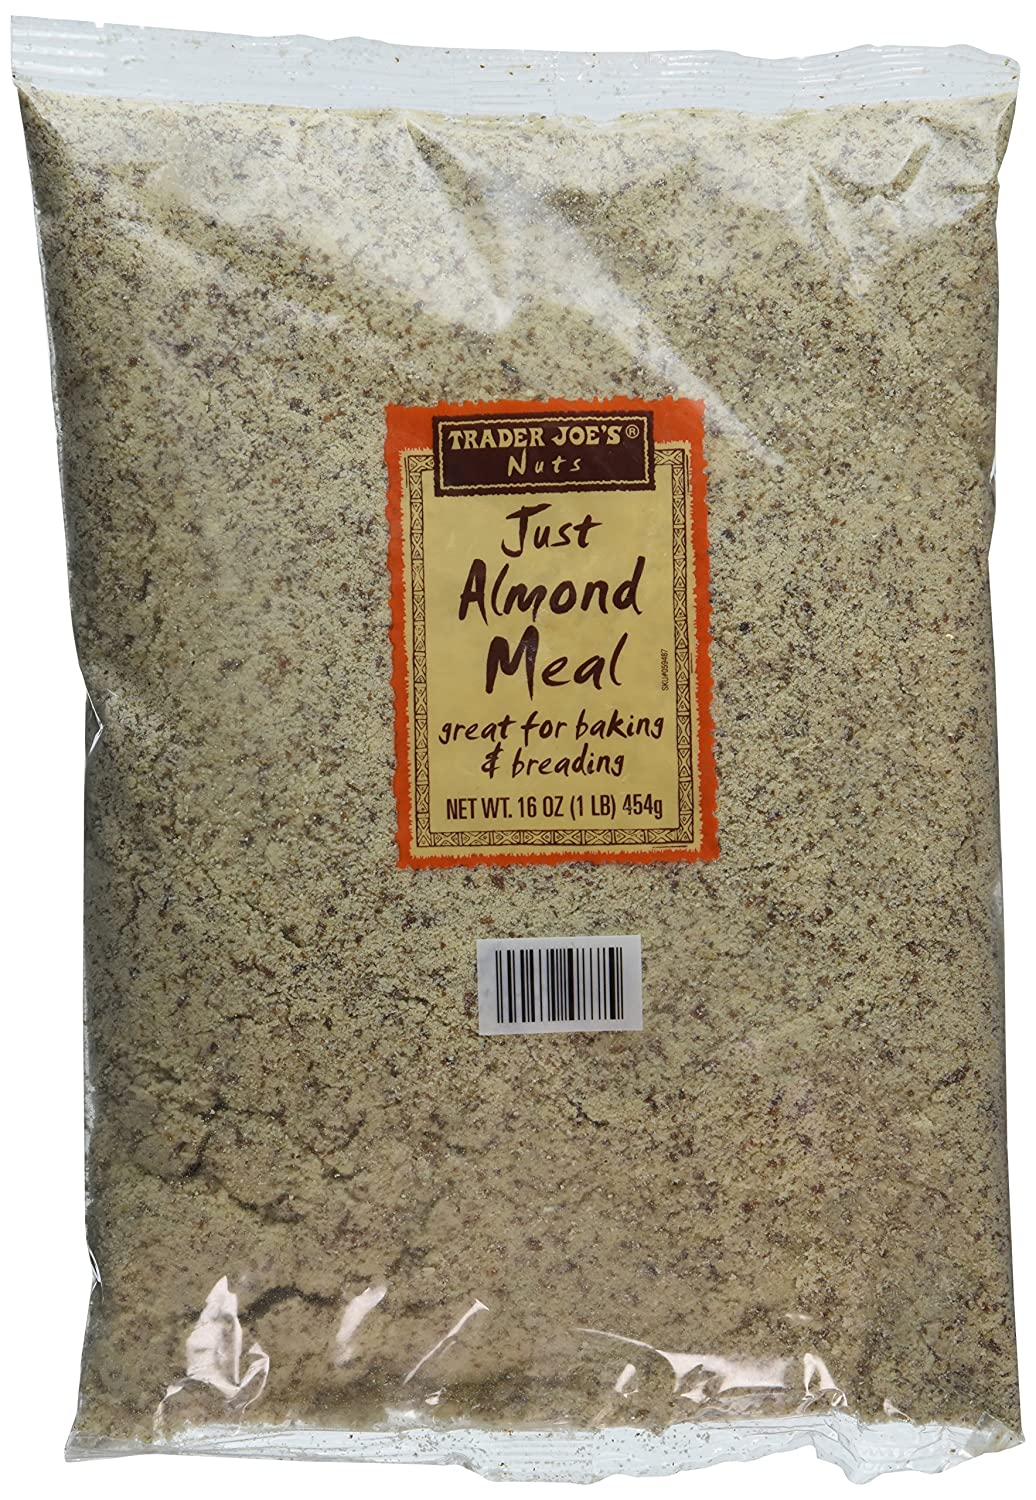 Trader Joes Just Almond Meal (1 lb): Amazon.com: Grocery ...